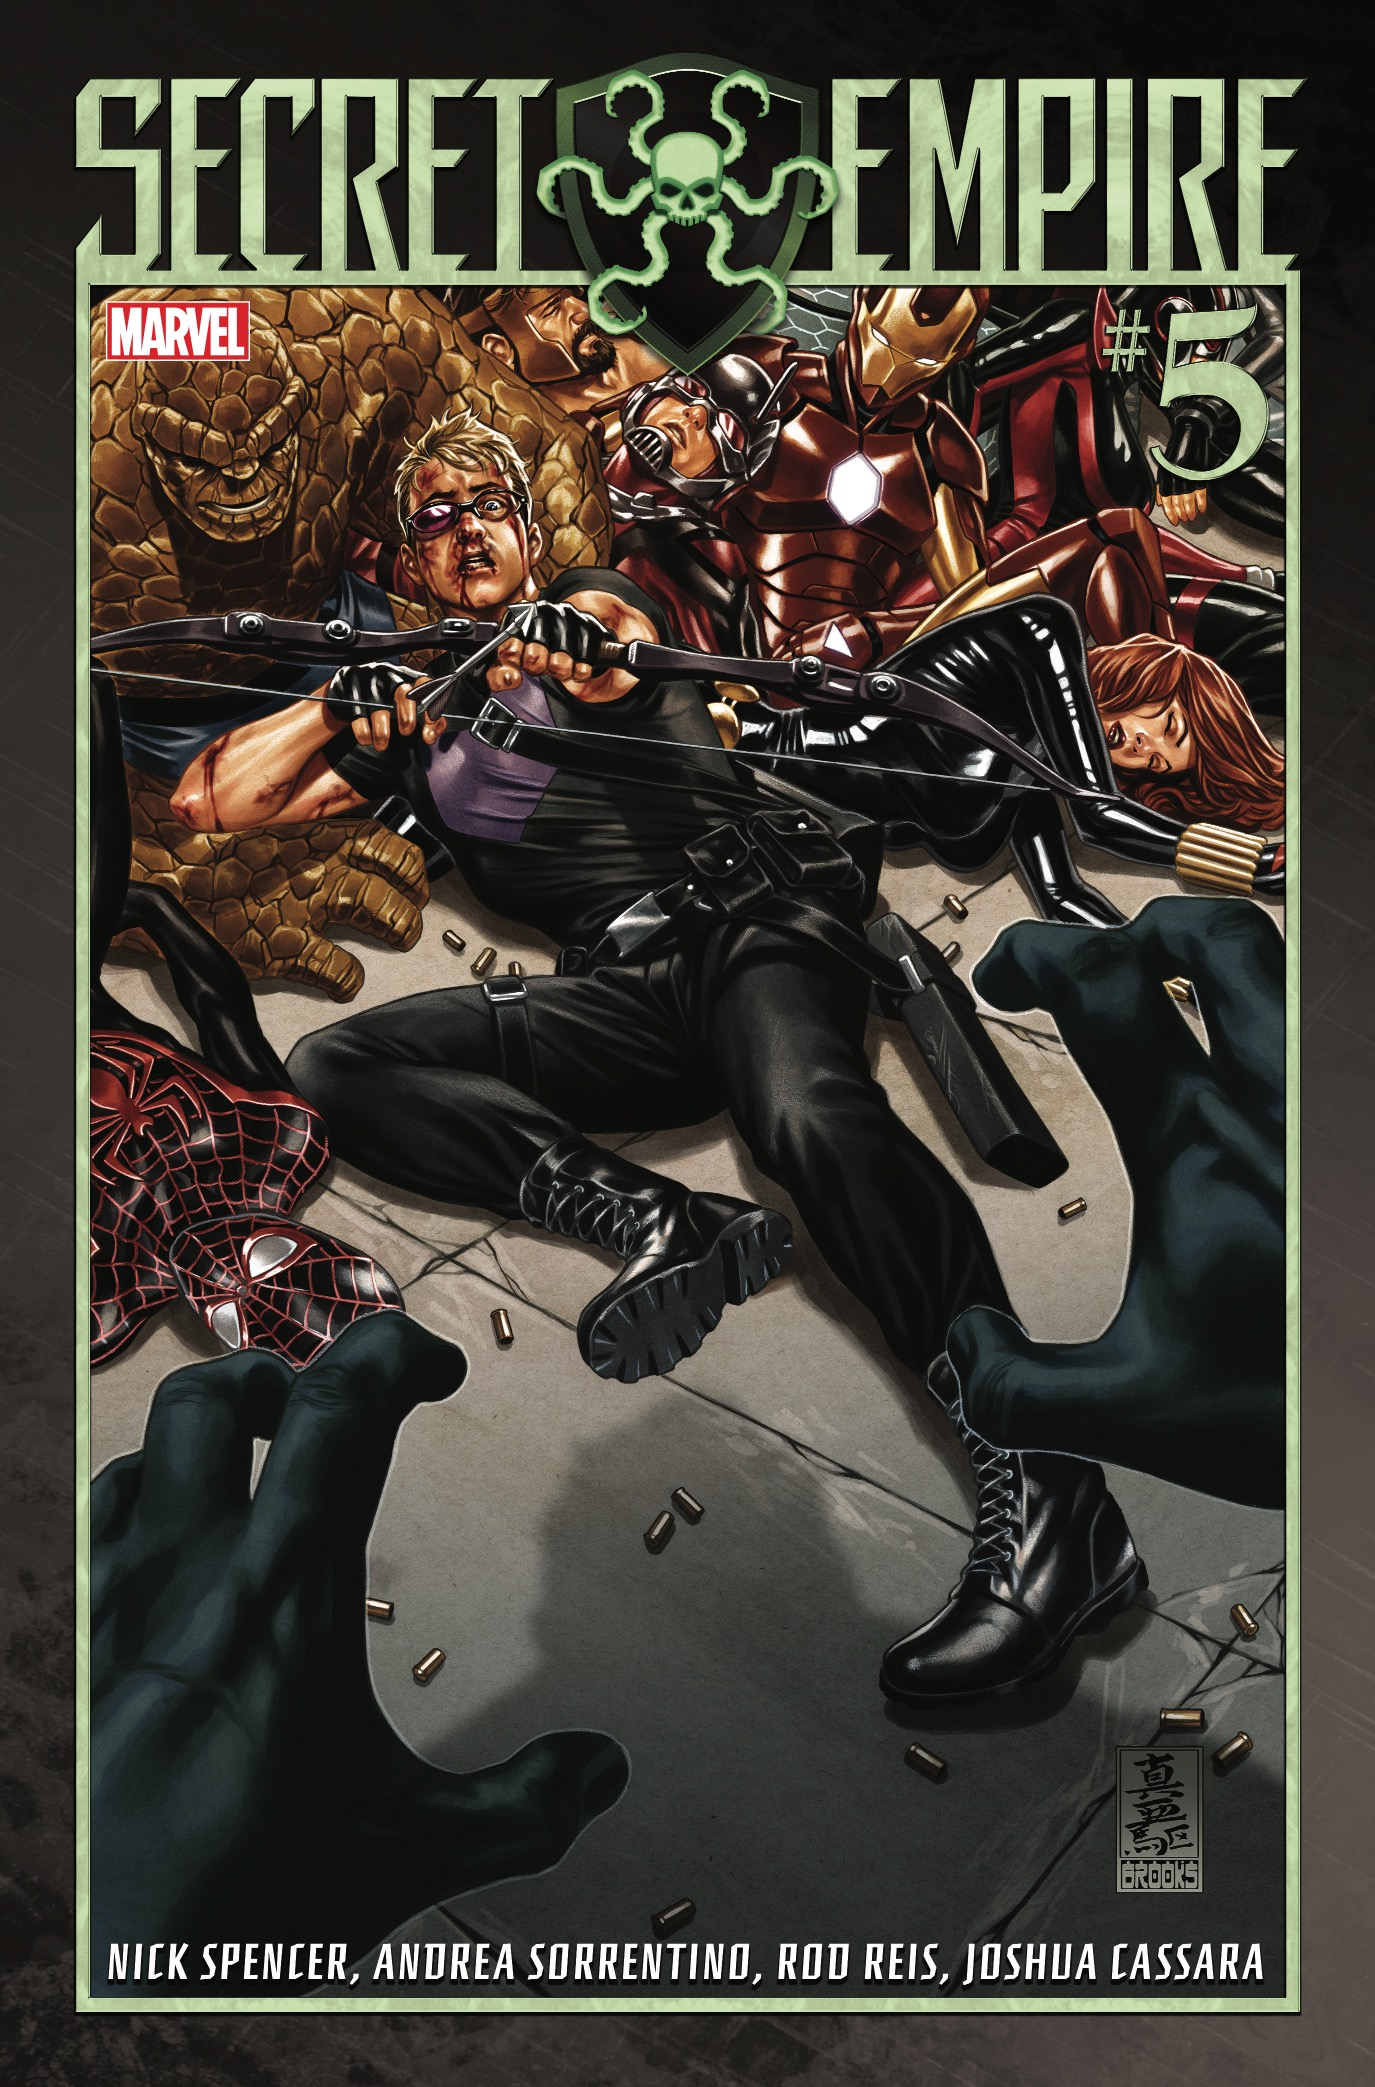 After last issue, I'm all in with this summer event series. It's managed to play around with Marvel tropes, write in some interesting character twists, and been good for a bit of political commentary. With the MacGuffin of the Cosmic Cube shards continuing to push the plot forward, let's review issue #5.